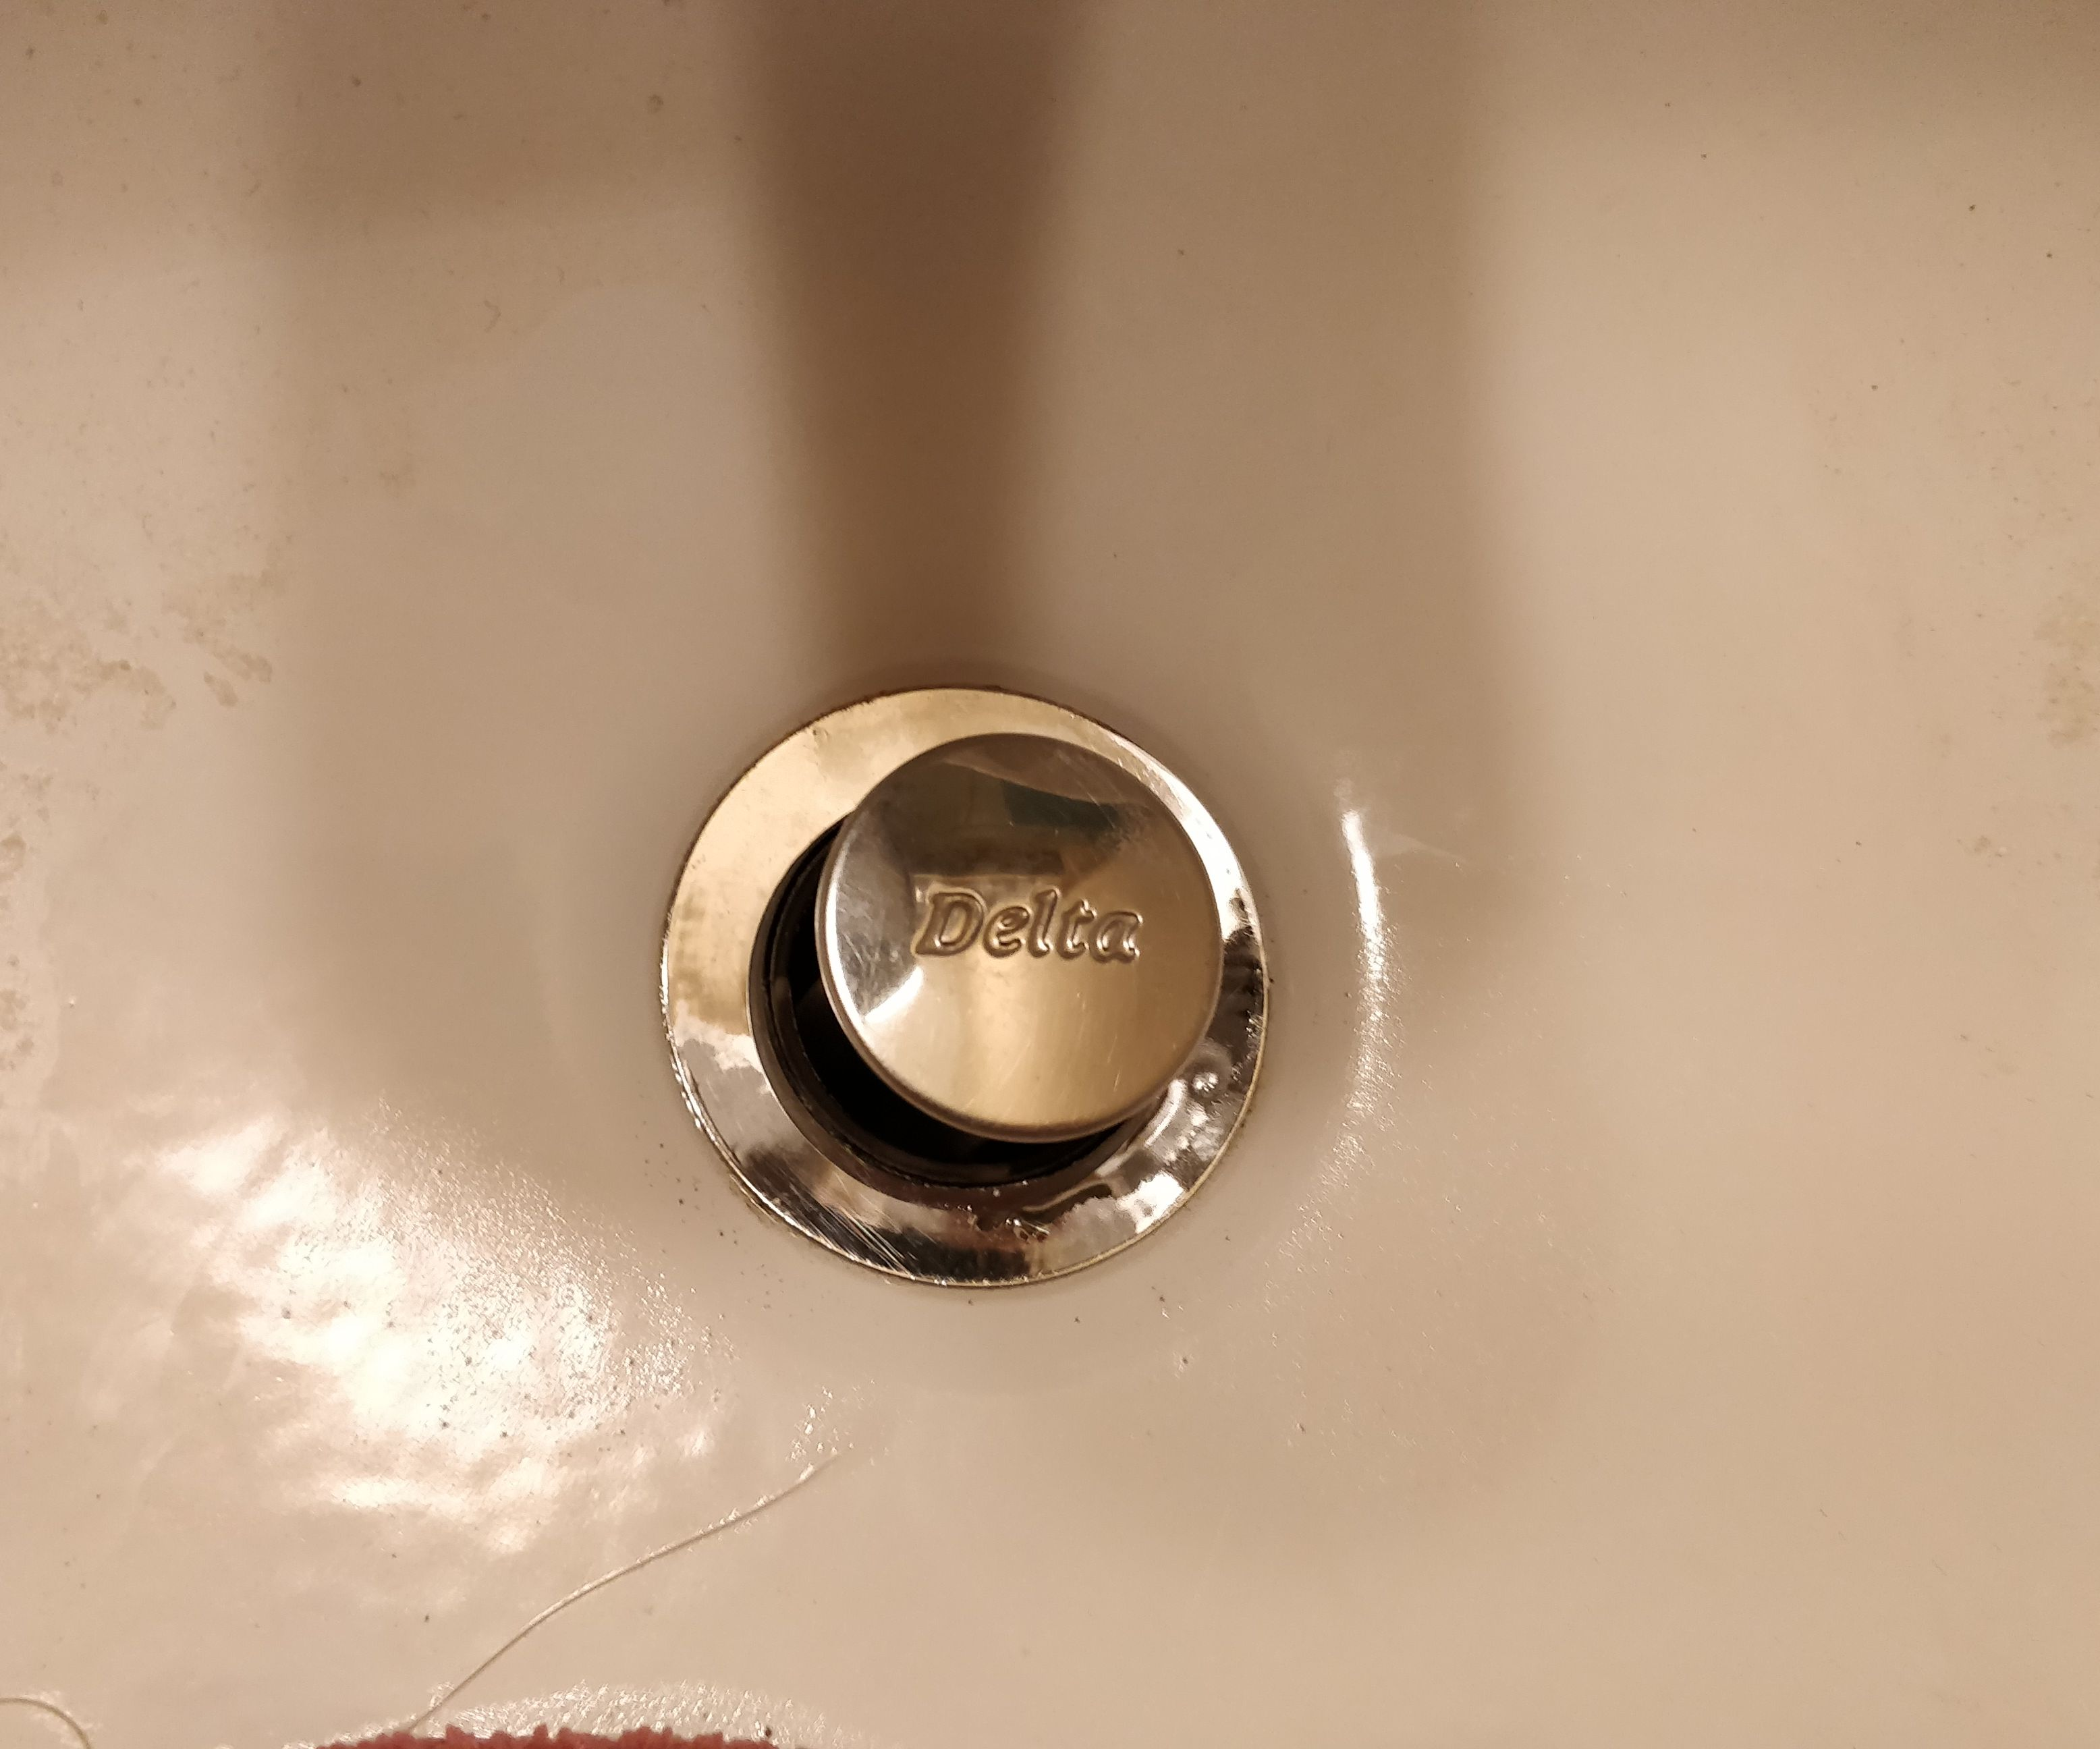 Basic Drain Unclogging (sink) With Baking Soda and Vinegar